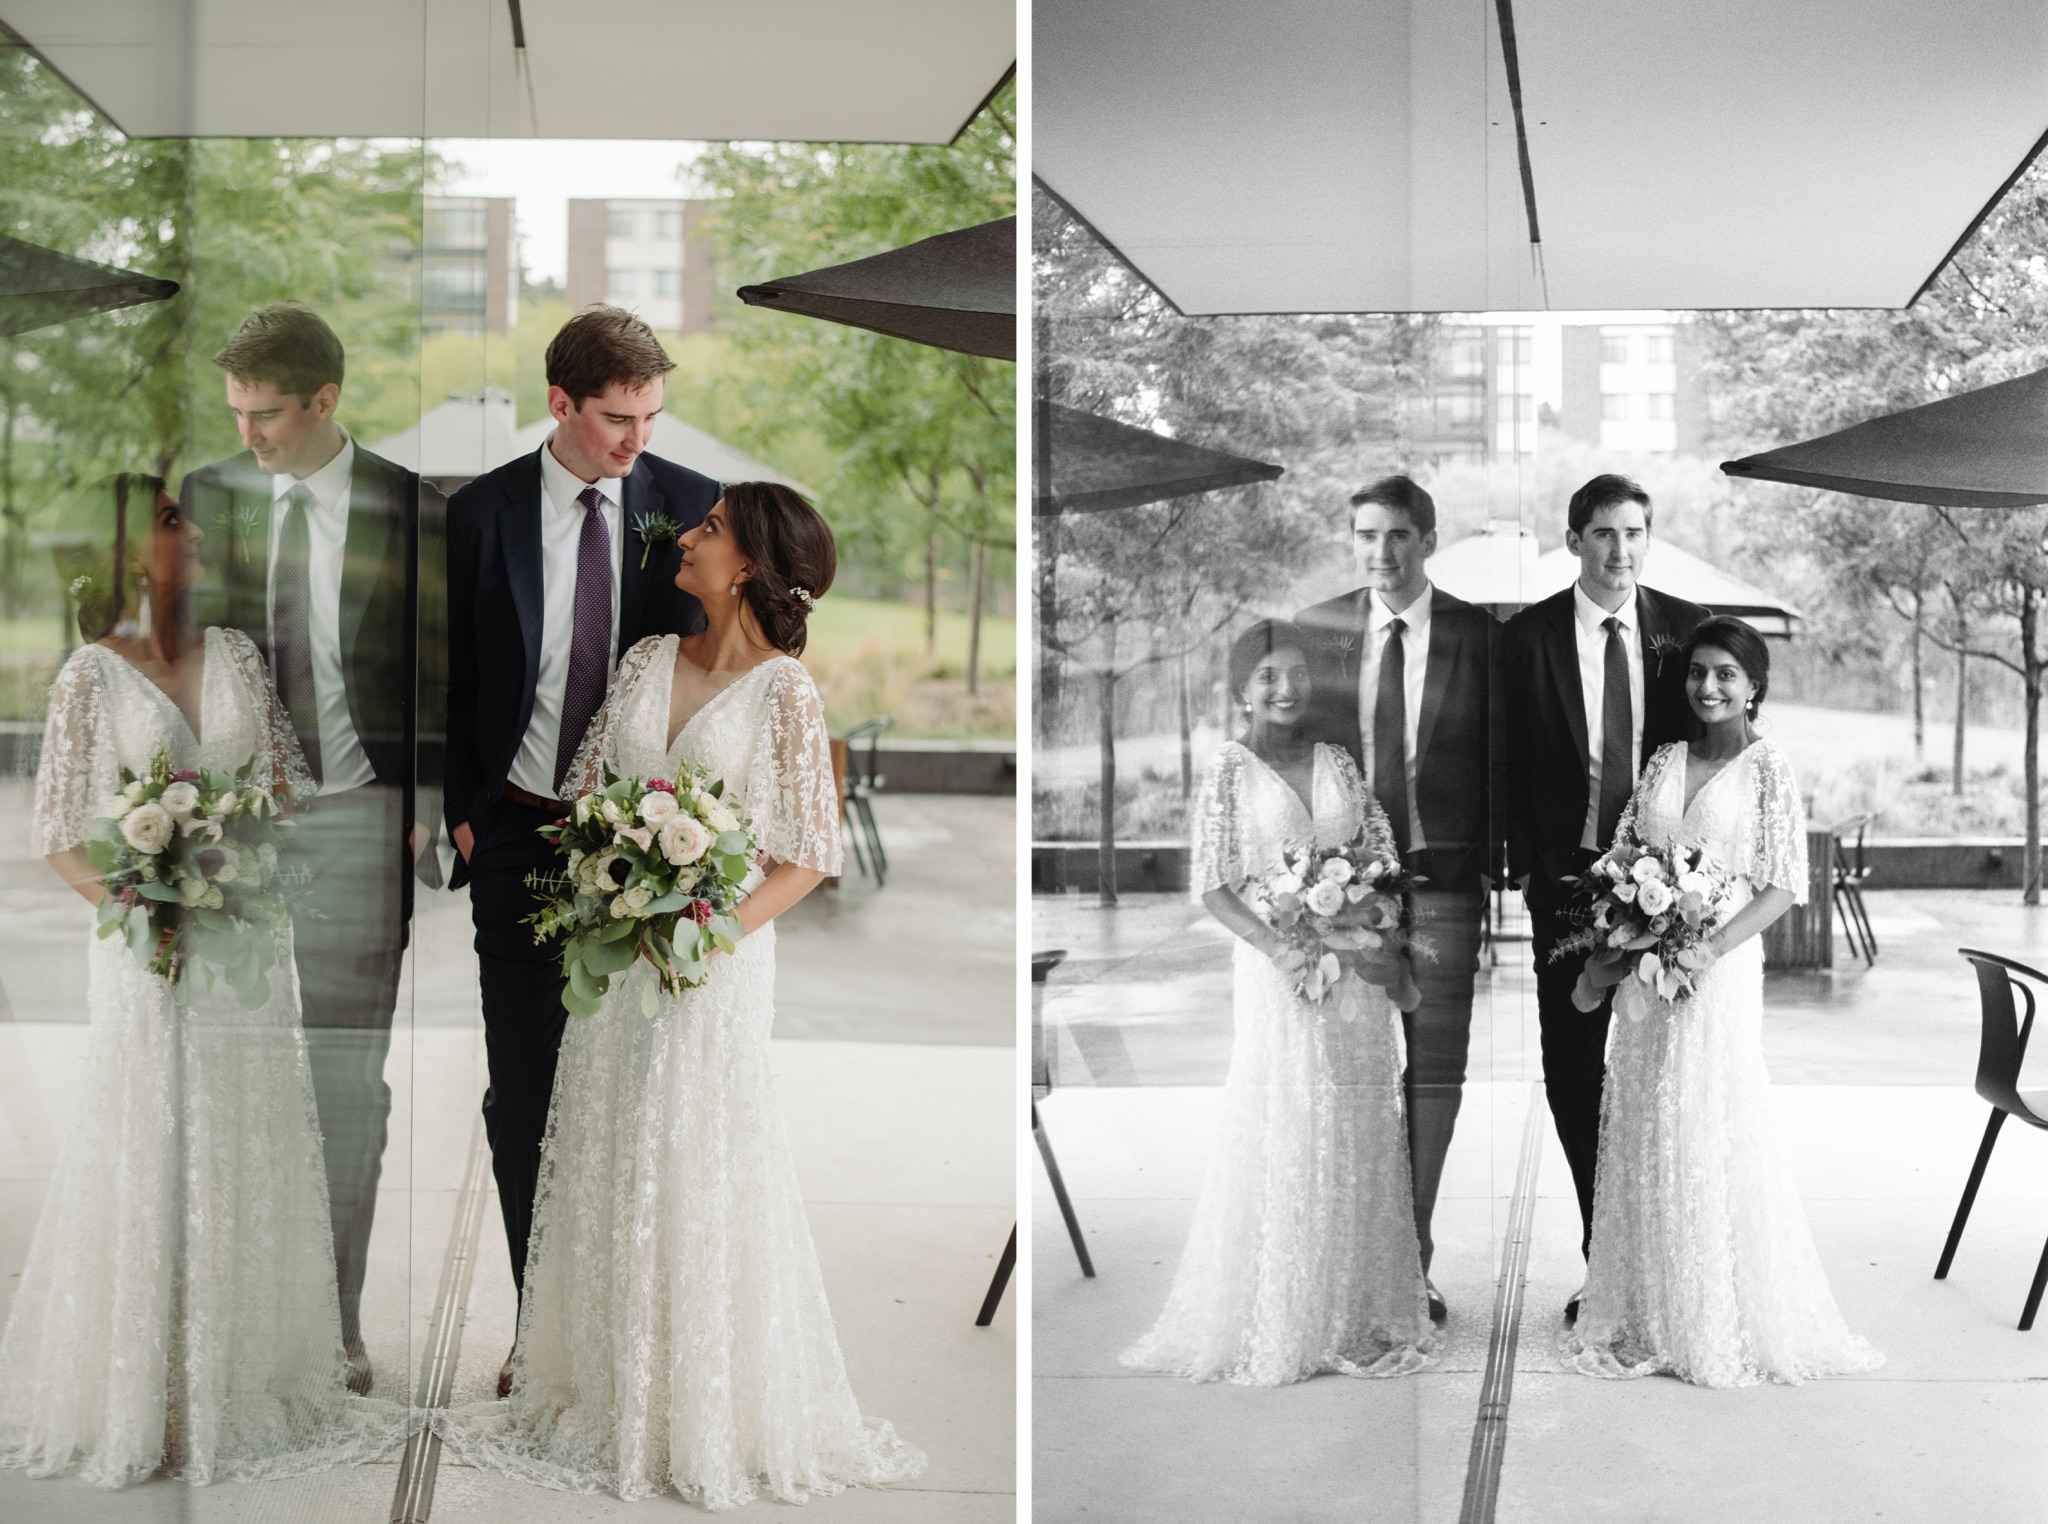 Bride and groom leaning against a window walker art center wedding